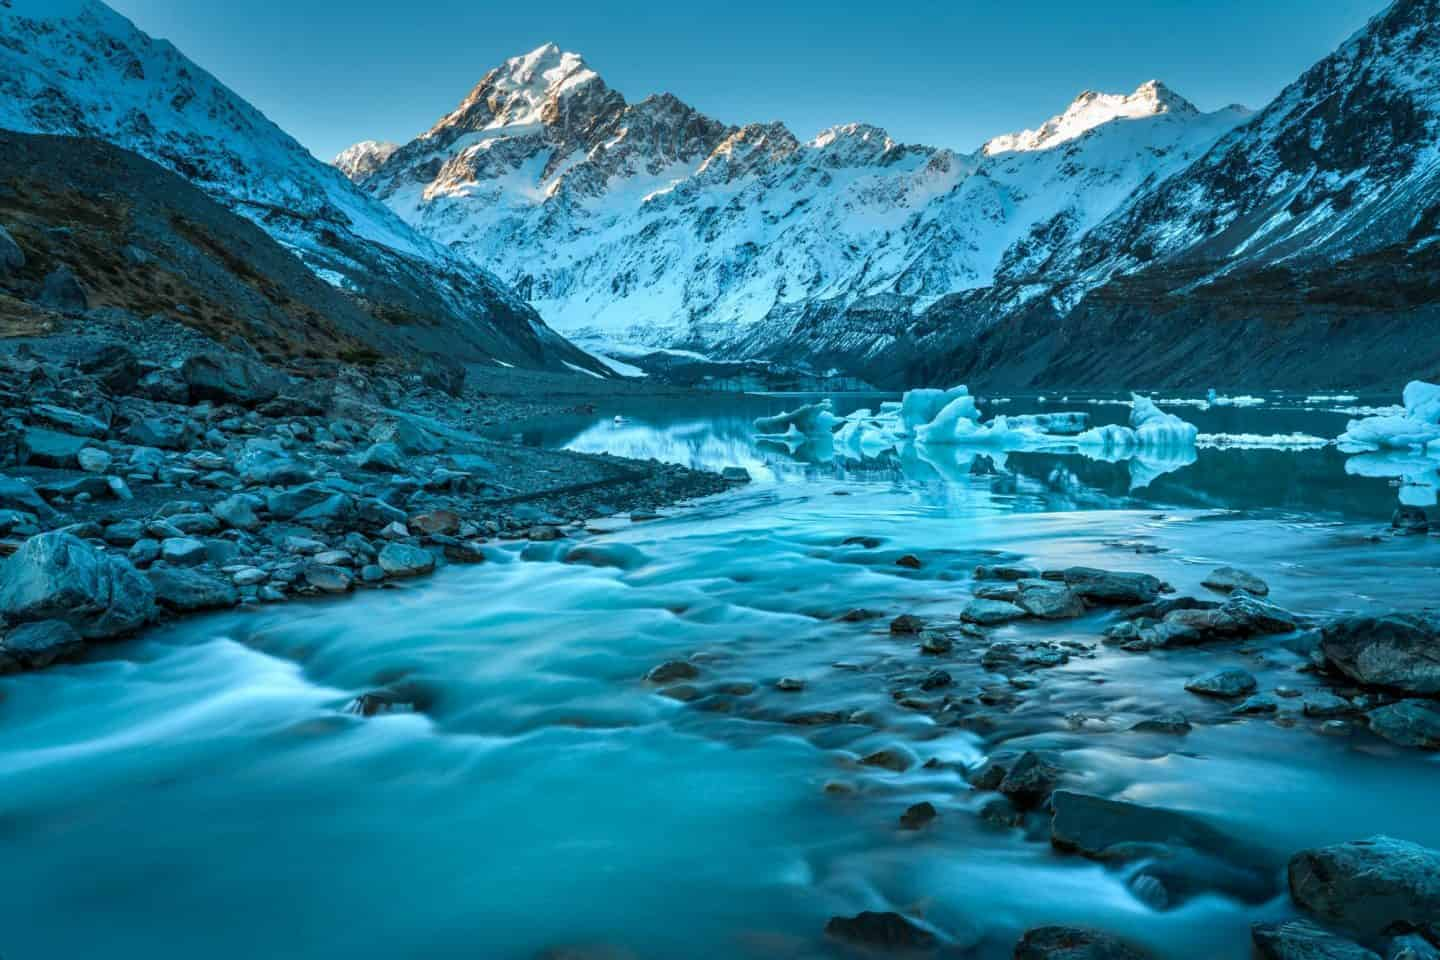 Our favorite place for New Zealand landscape photography is here at Hooker Lake in Mt Cook.